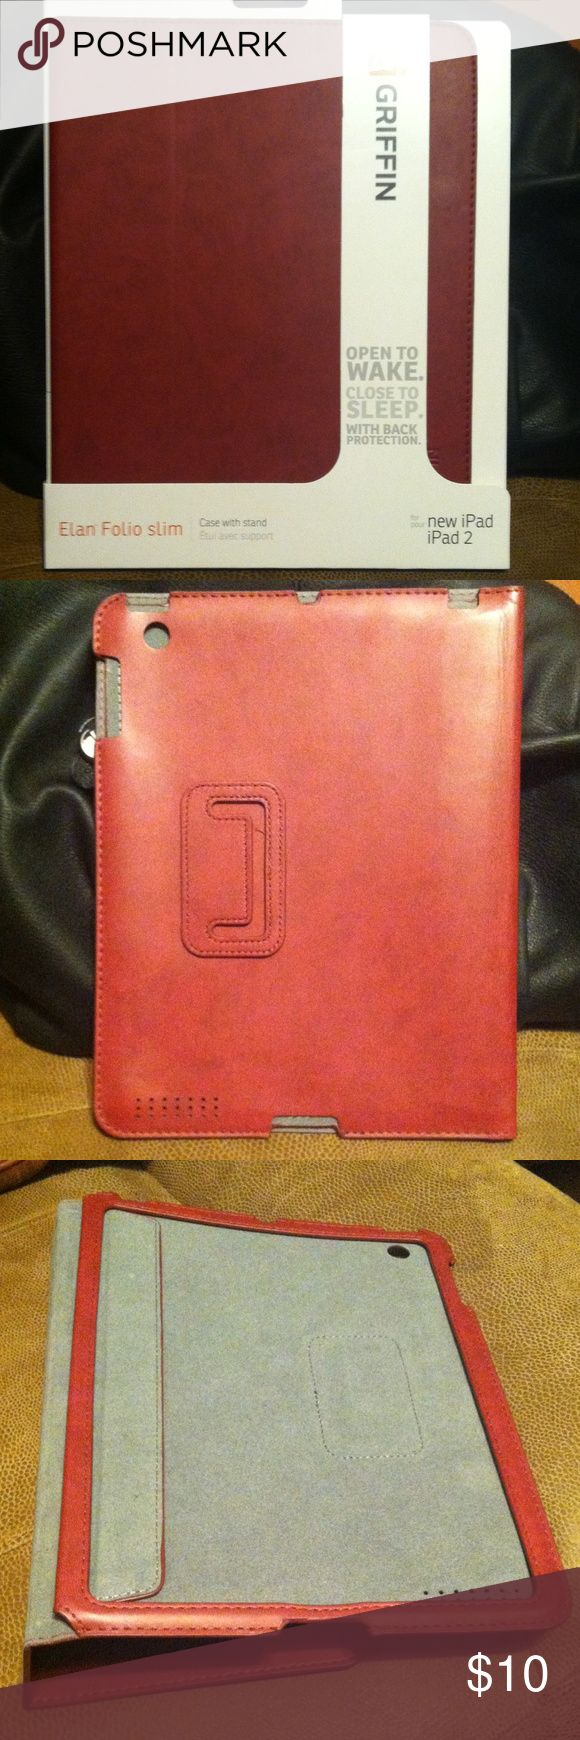 iPad/iPad 2 Griffin Slim Case/Stand 🌟🌟FREE stylus with all electronics purchases!! 🌟🌟Crimson Red Élan Folio Slim Griffin case with grey felt interior. Folds into a stand. Automatically wakes and sleeps your device when you open and close the case. Griffin Accessories Tablet Cases